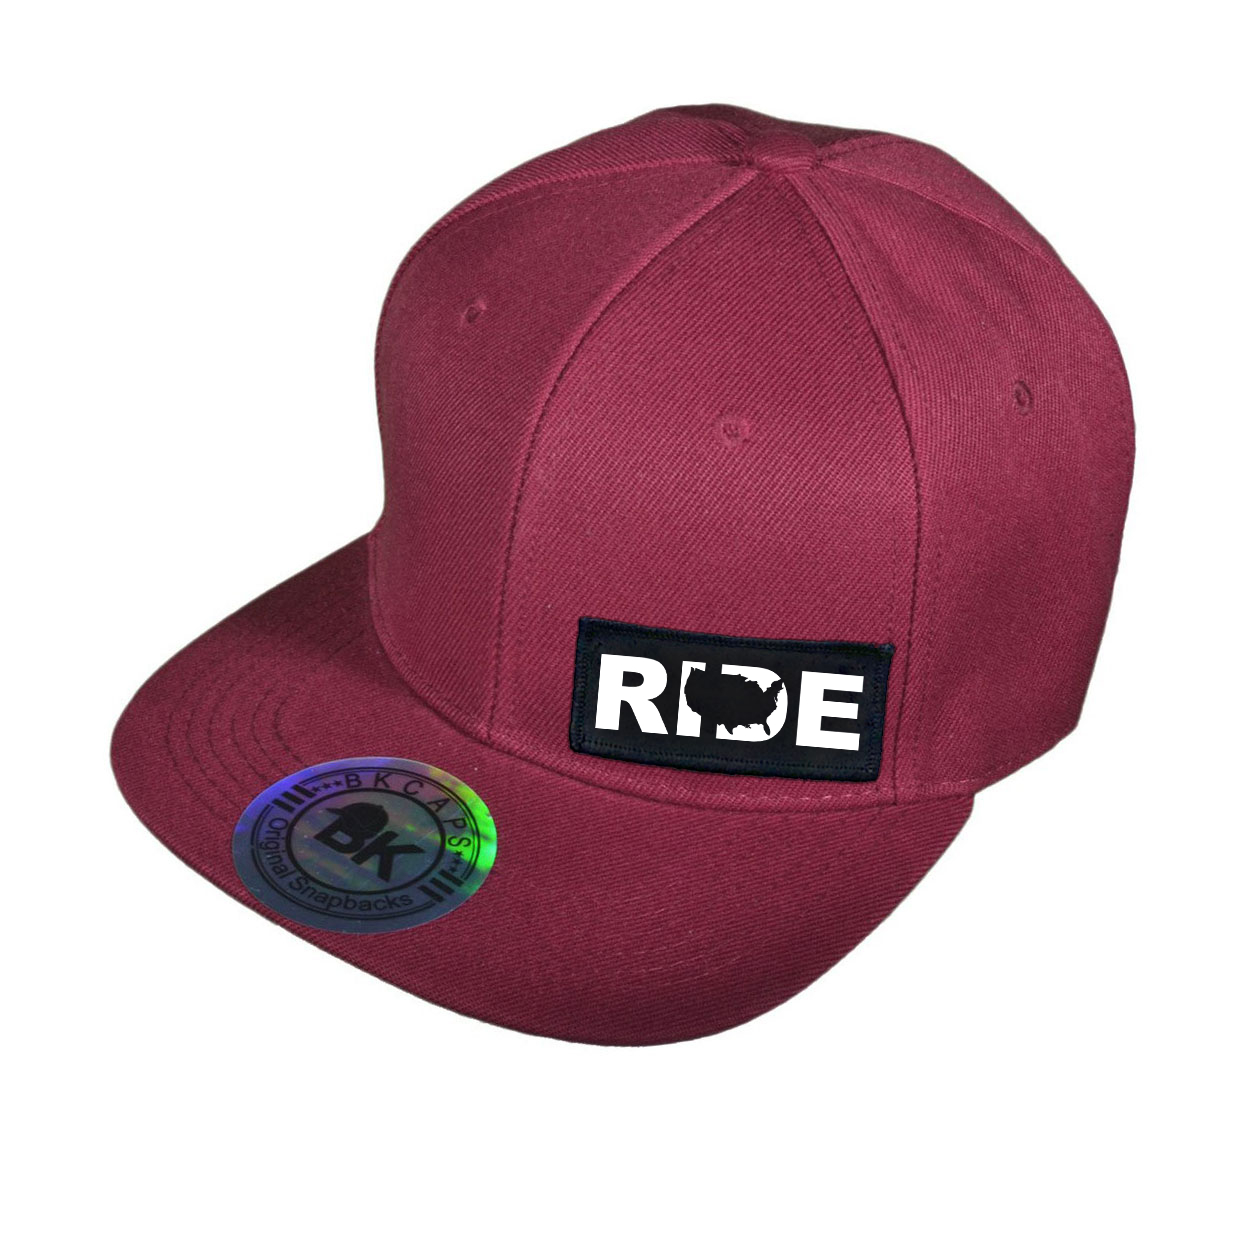 Ride United States Night Out Woven Patch Snapback Flat Brim Hat Burgundy (White Logo)